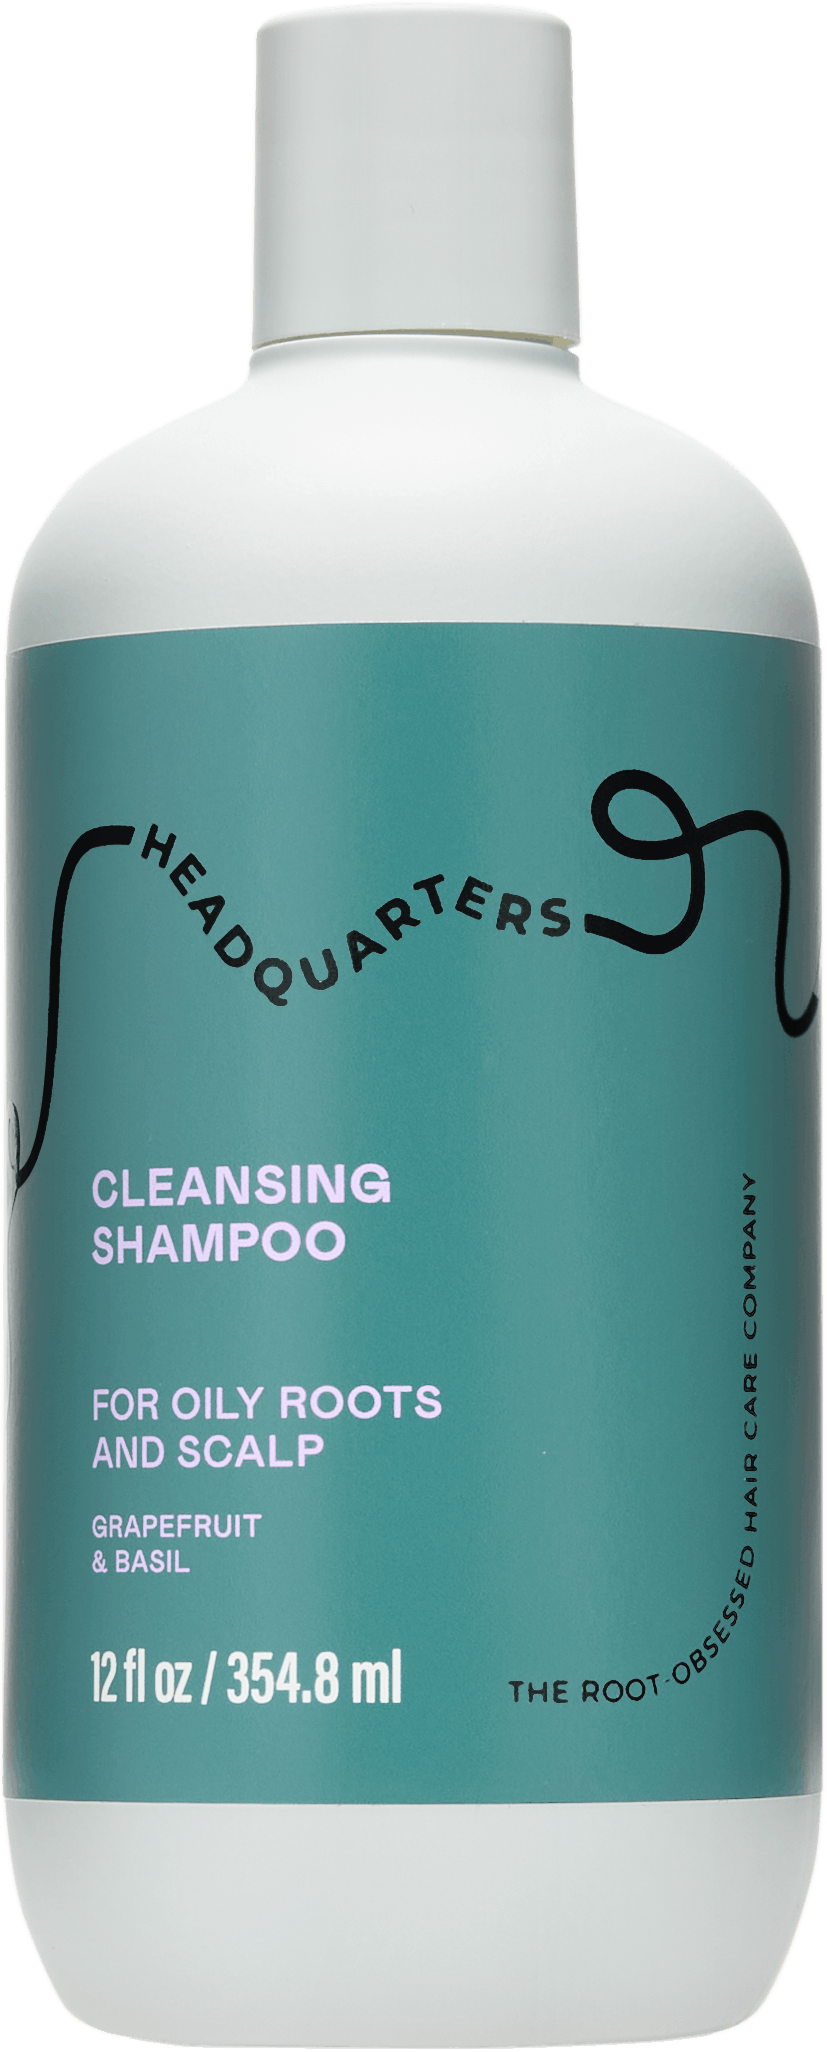 Headquarters Cleansing Shampoo Dry scalp care bottle